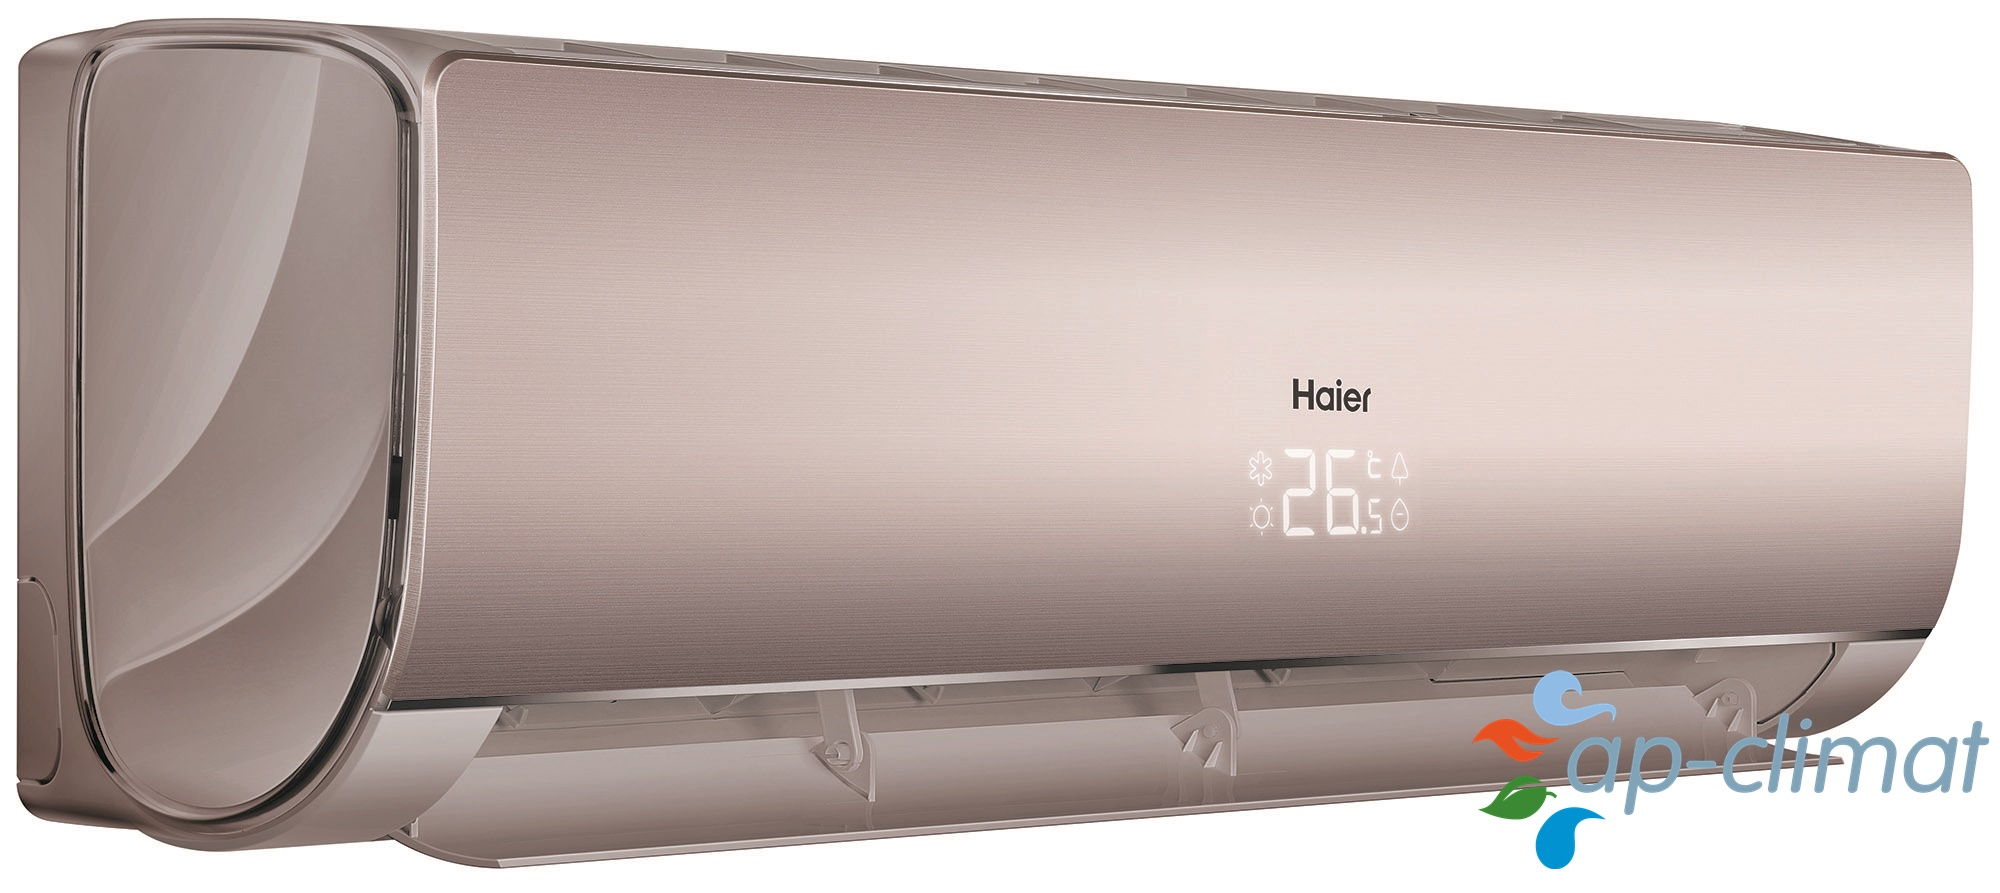 Сплит-система Haier AS18NS4ERA-G/1U18FS2ERA(S)